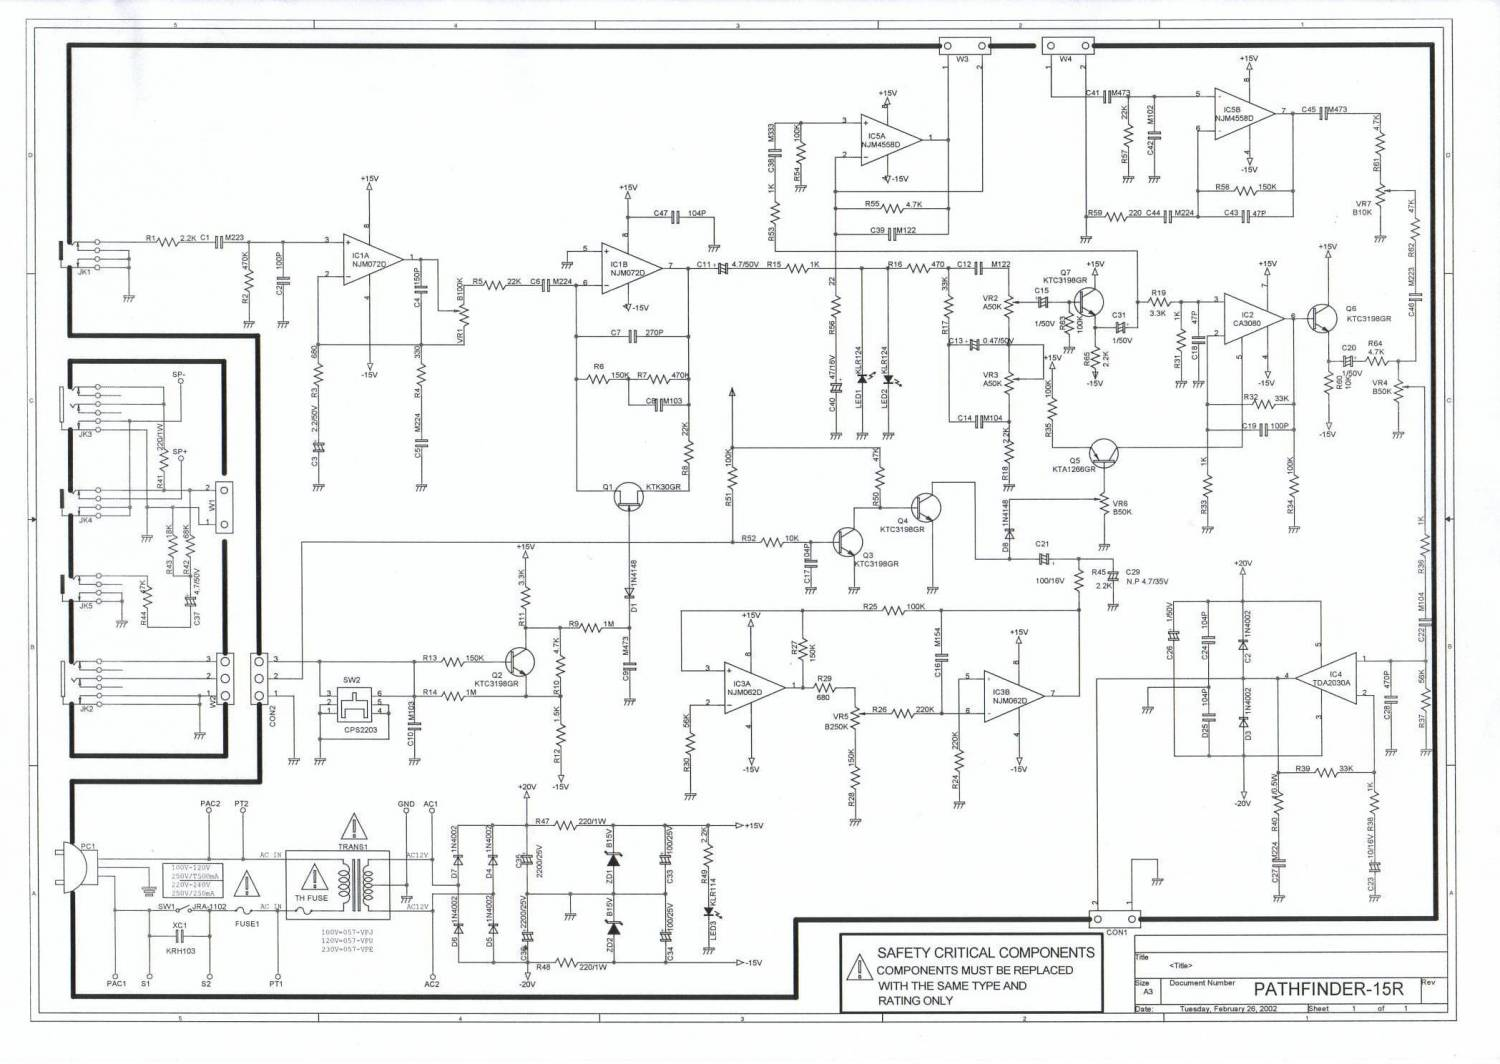 vox pathfinder 10 schematic  | ultimate-guitar.com